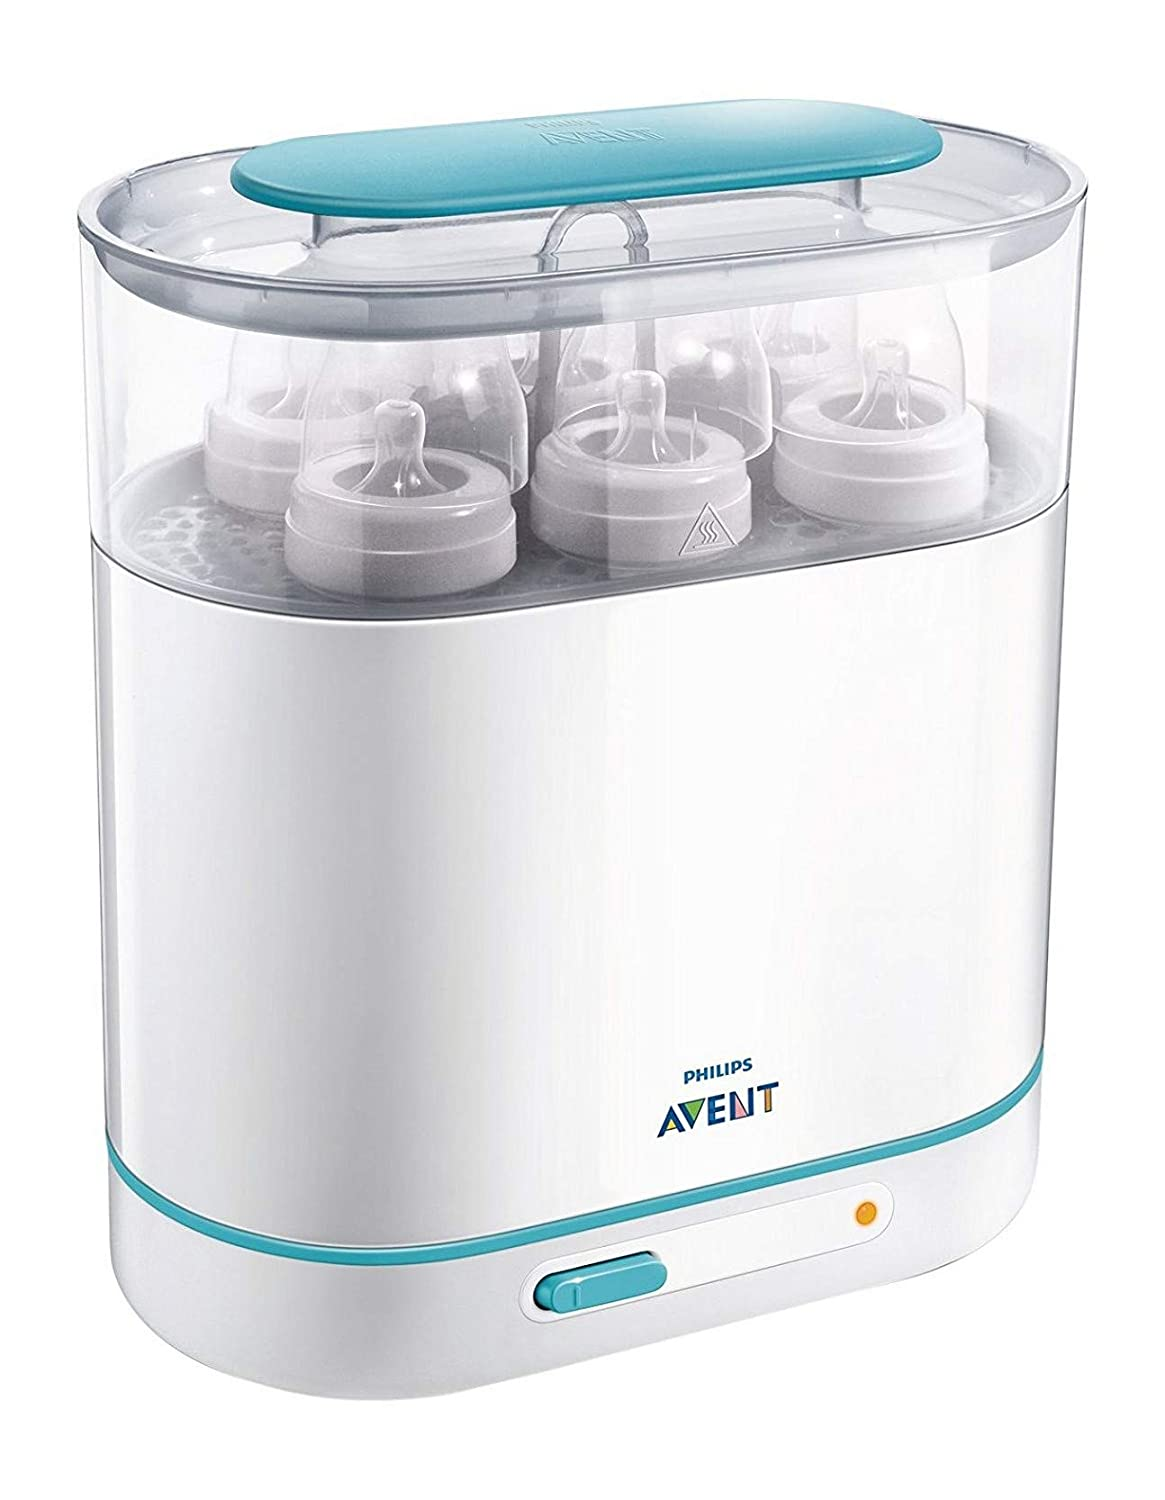 Avent 3 In 1 Steriliser HealthCentre SCF284/01